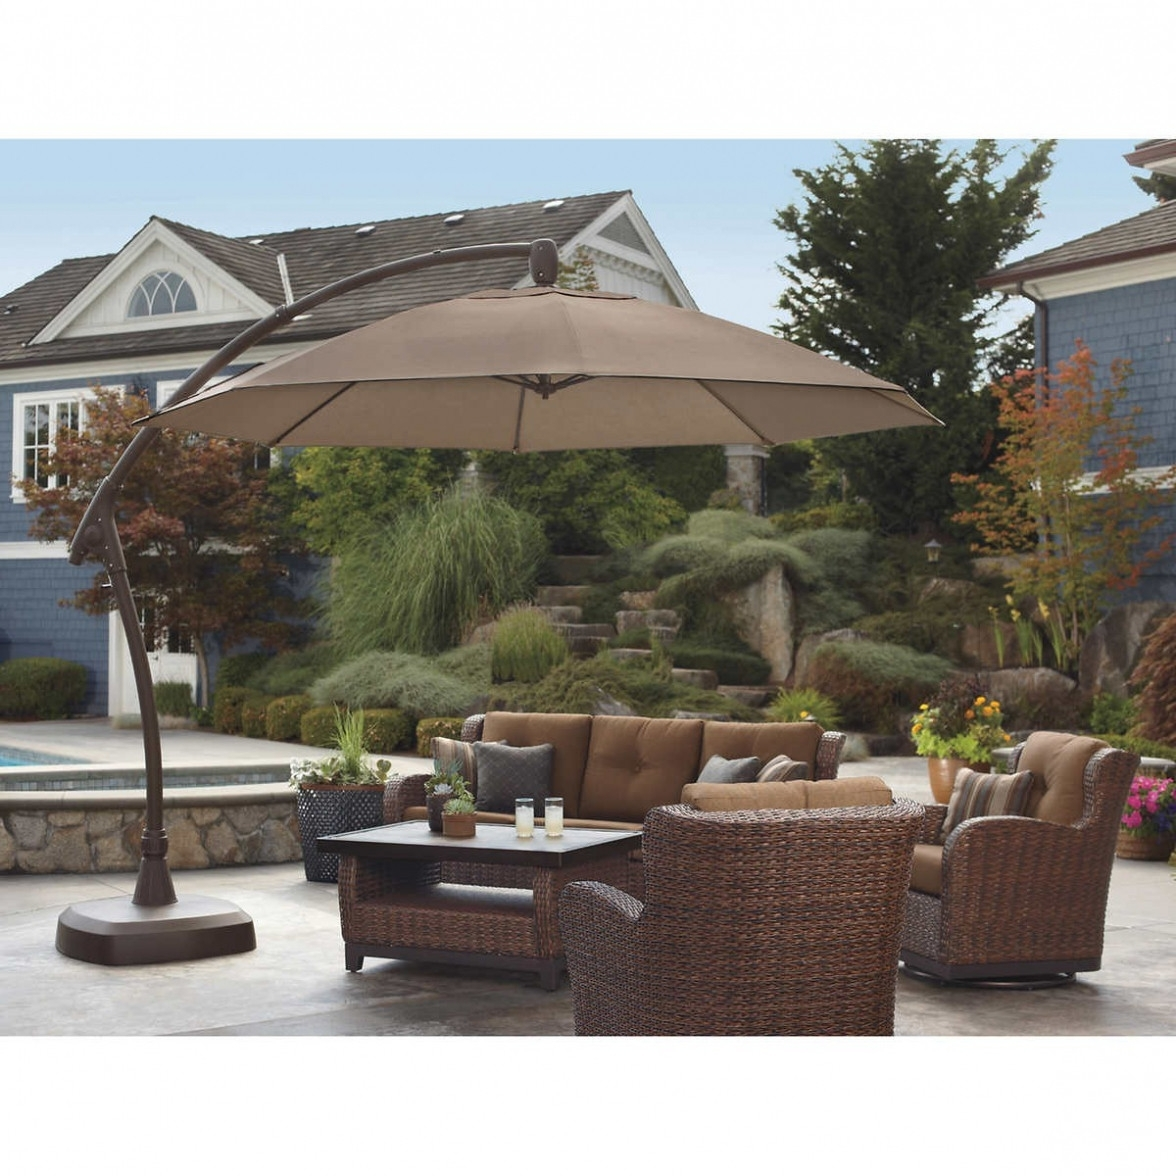 Costco Patio Umbrella – Home Design Ideas Throughout Well Liked Patio Umbrellas From Costco (View 2 of 20)